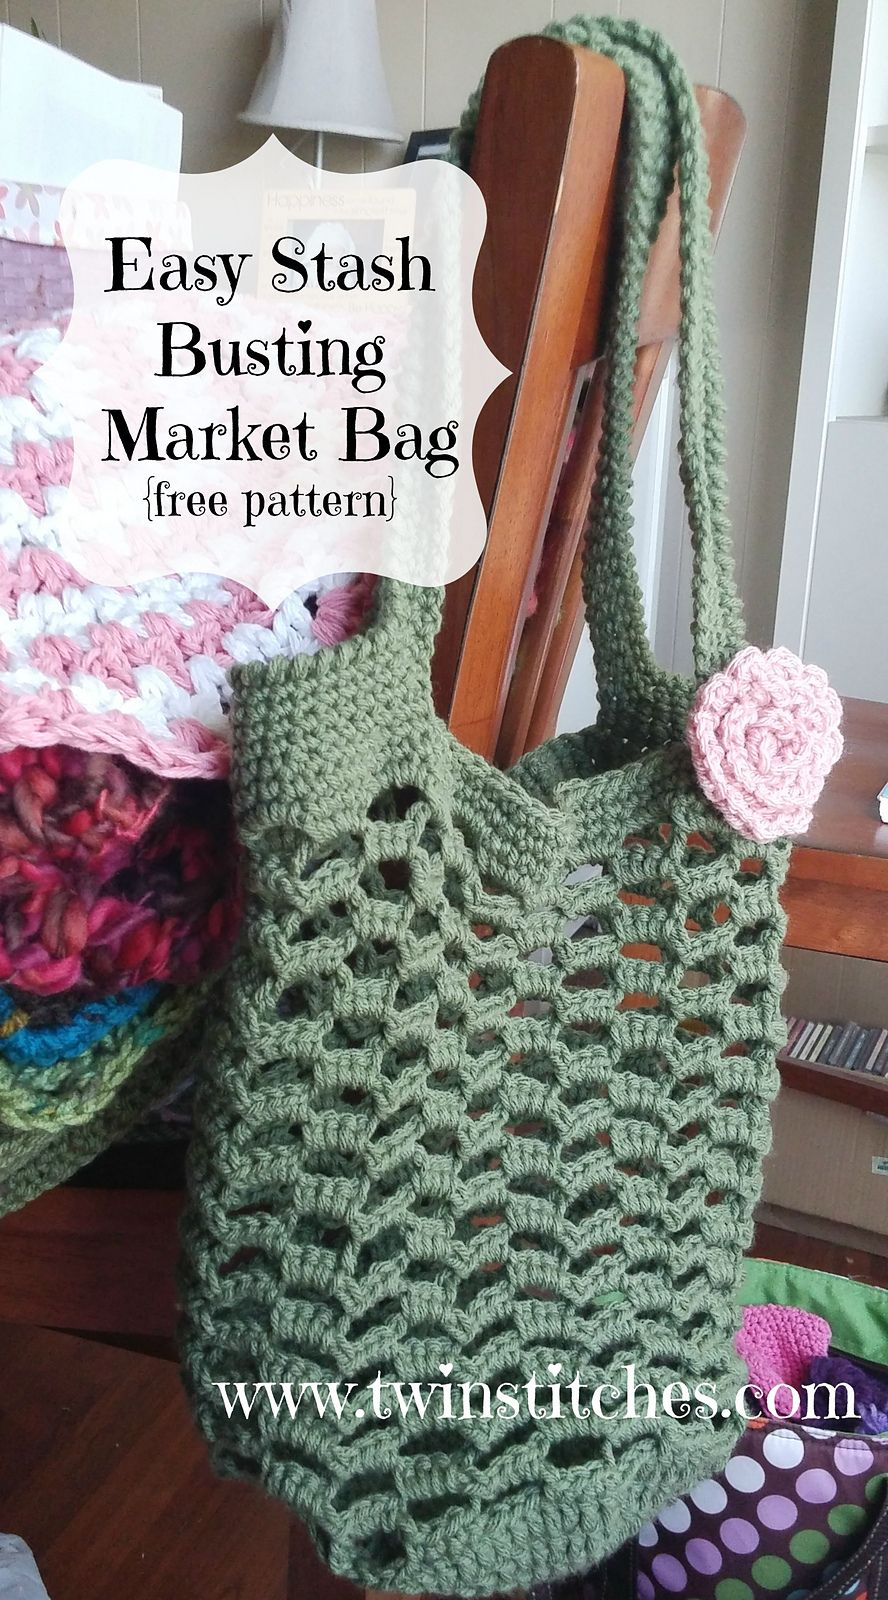 Easy Stash Busting Market Bag By Jennifer Uribe - Free Crochet ...